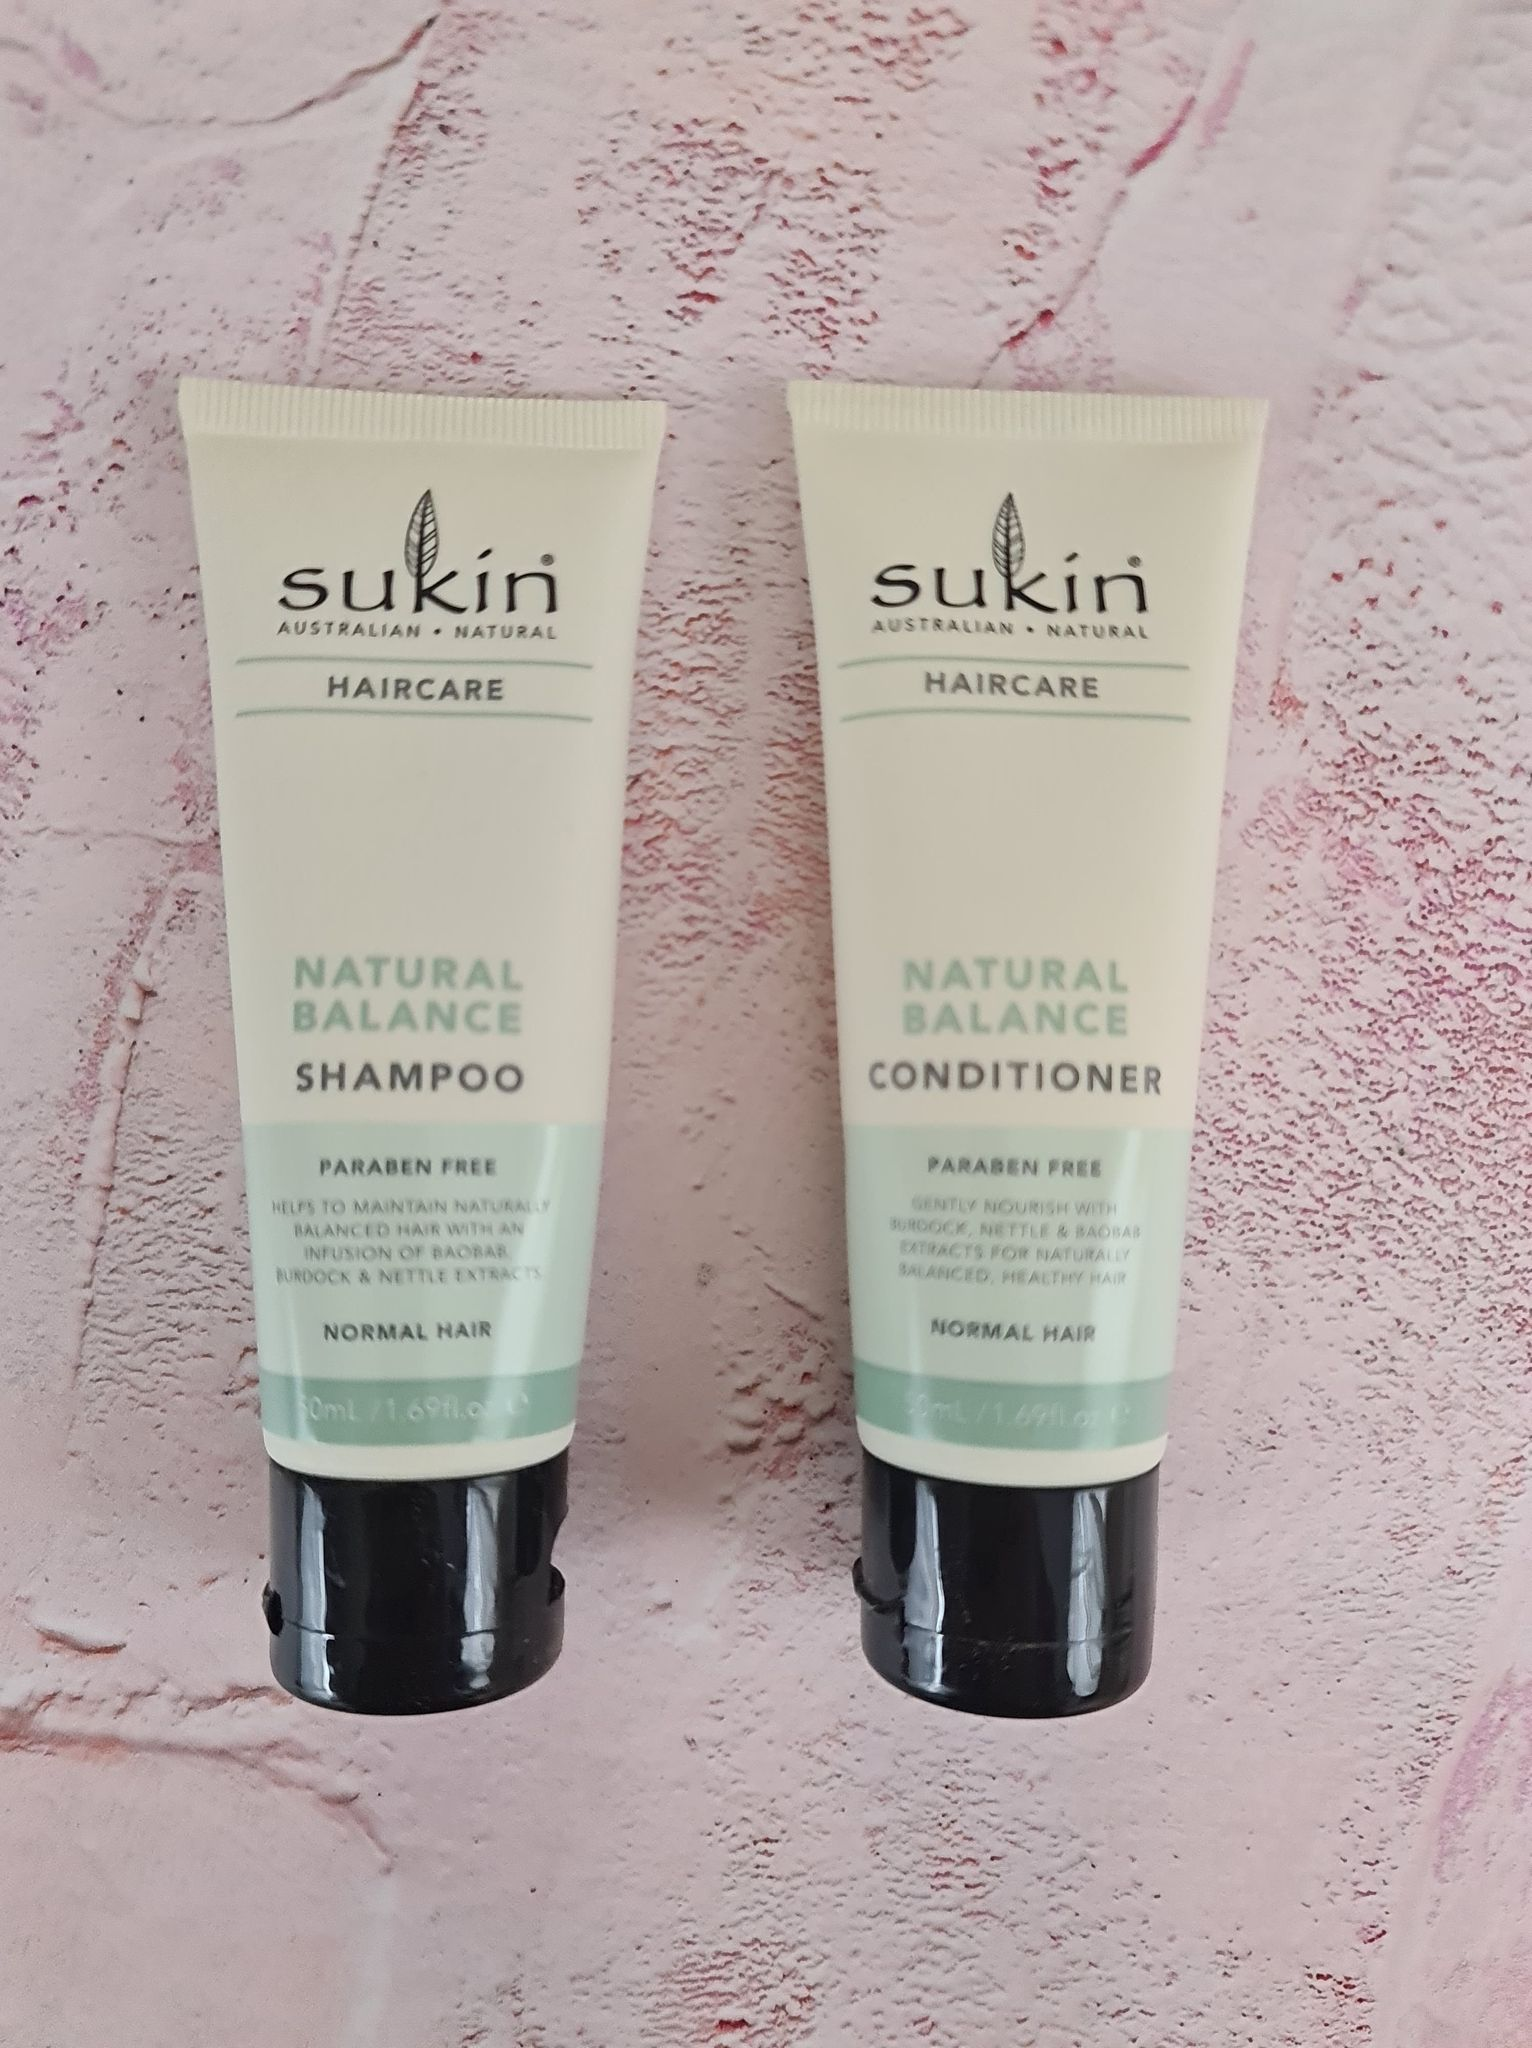 Sukin shampoo and conditioner review